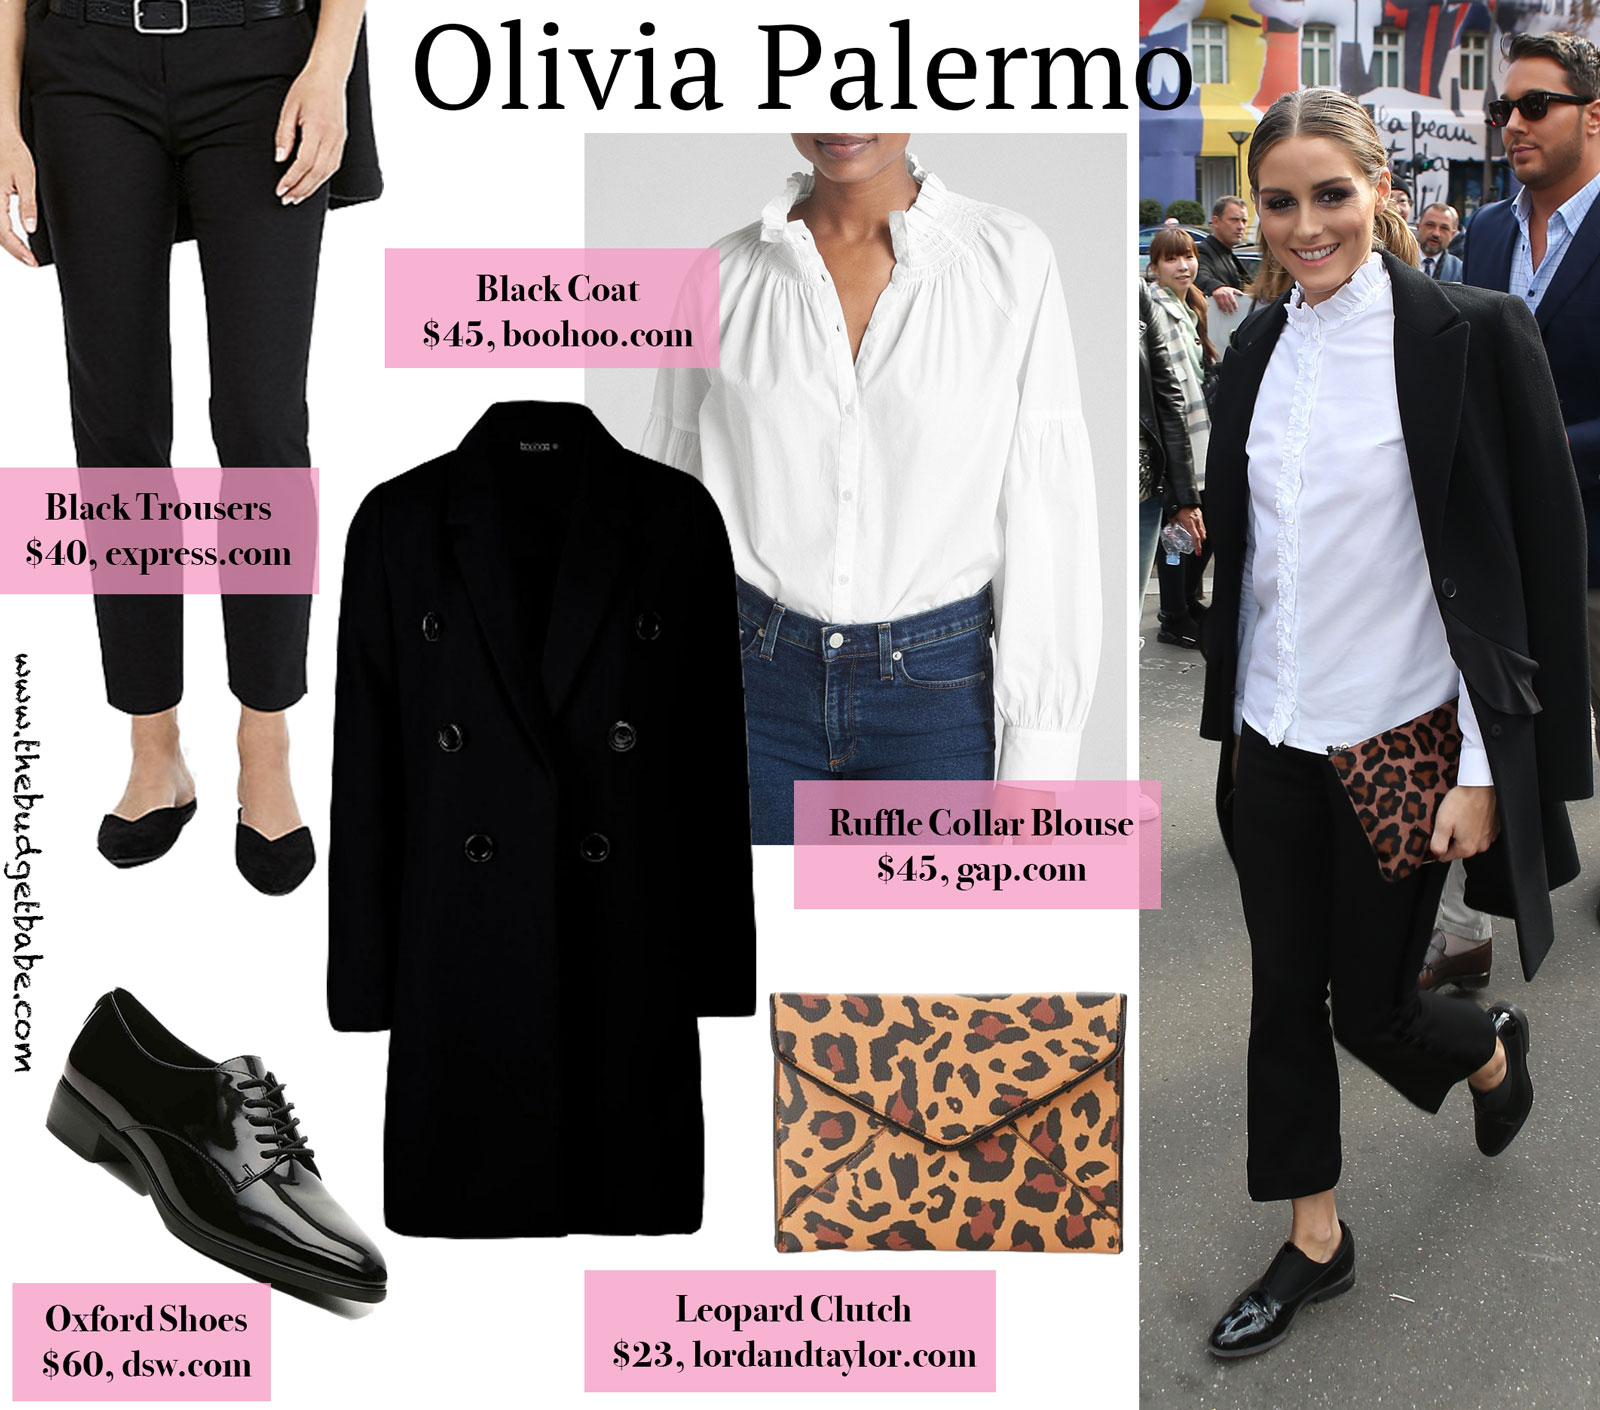 Olivia Palermo Leopard Clutch, Oxfords and White Blouse Look for Less